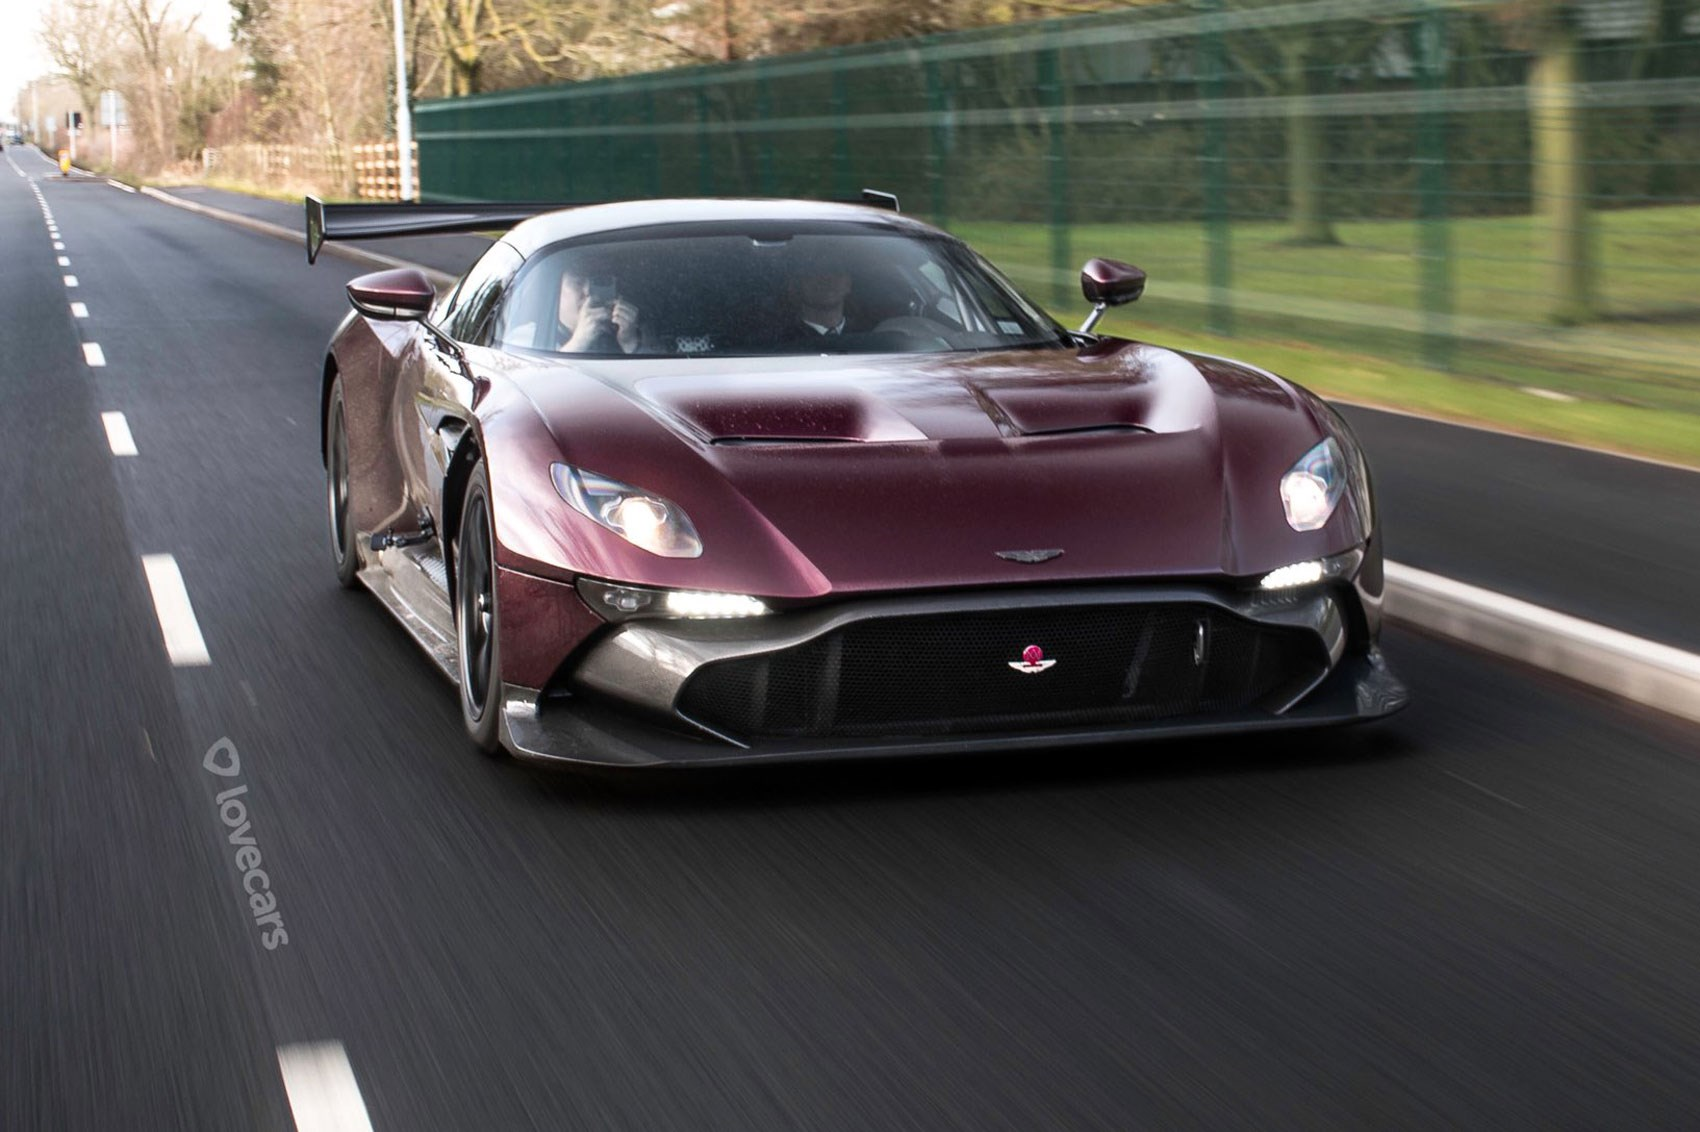 aston martin vulcan unveiled 24 extreme track day cars for by car magazine. Black Bedroom Furniture Sets. Home Design Ideas